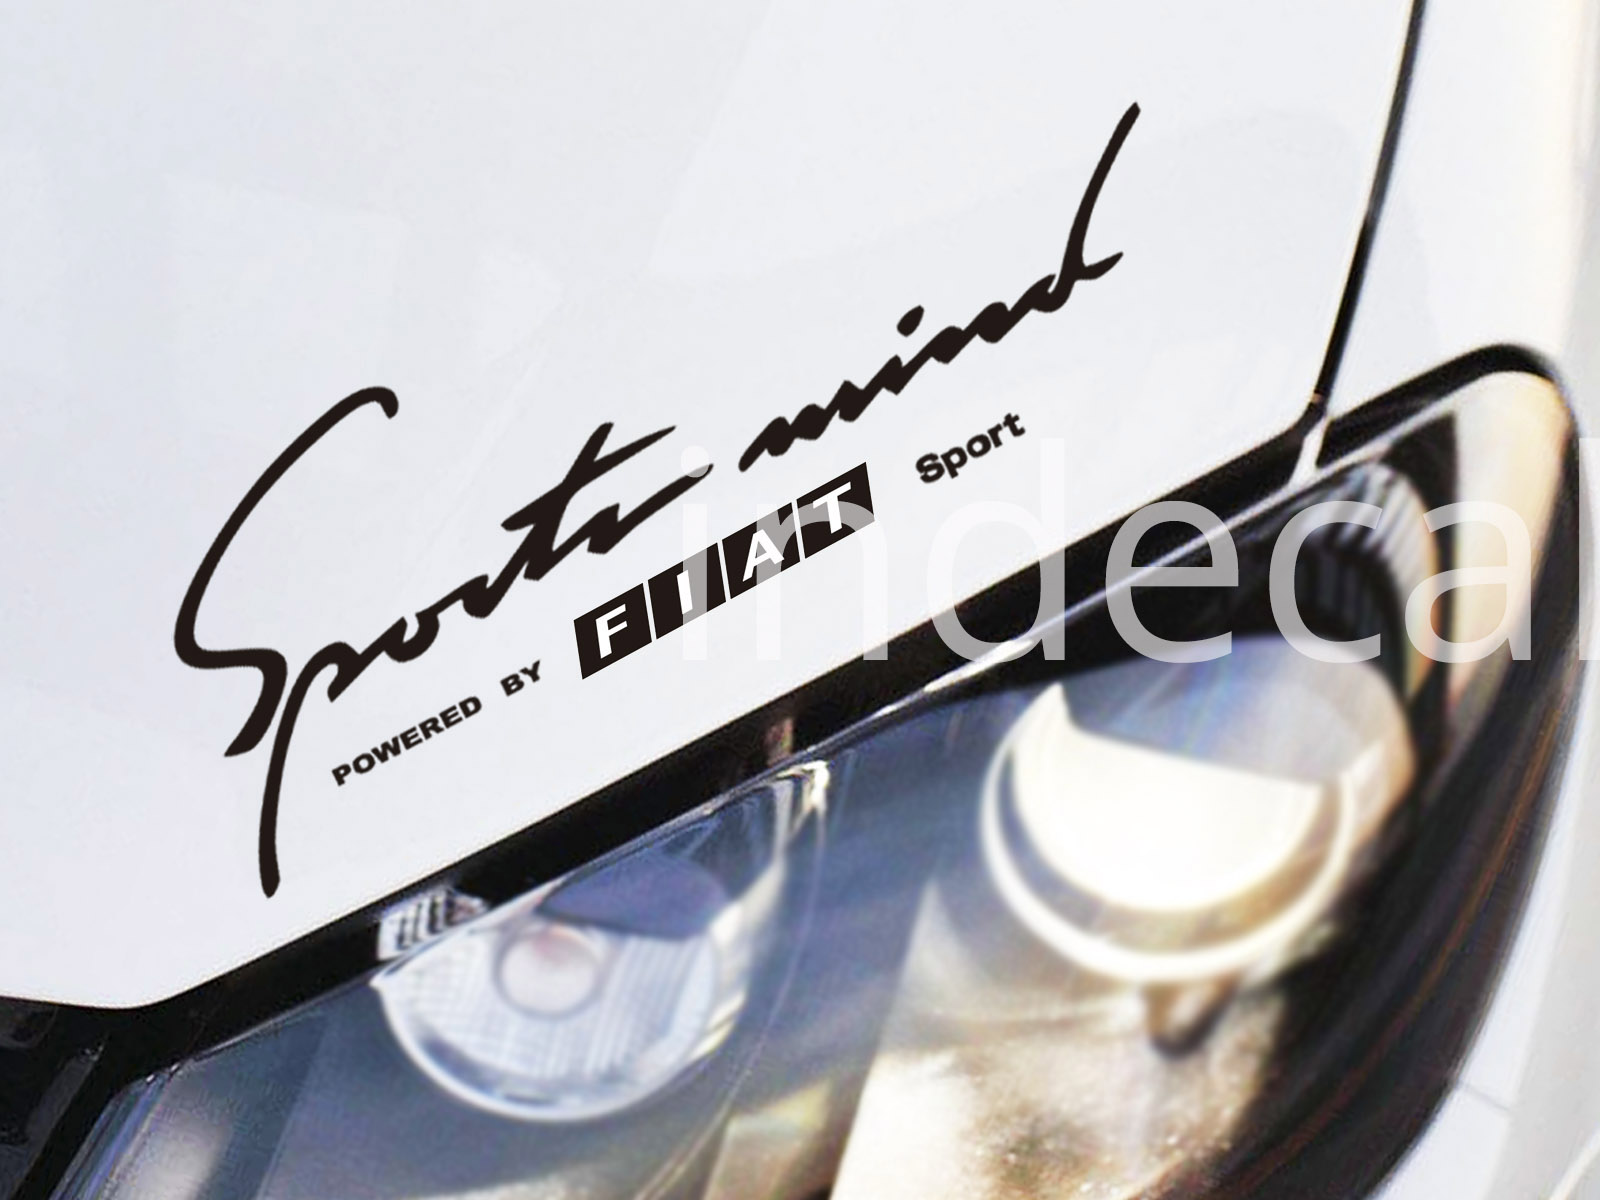 1 x Fiat Sports Mind Sticker - Black